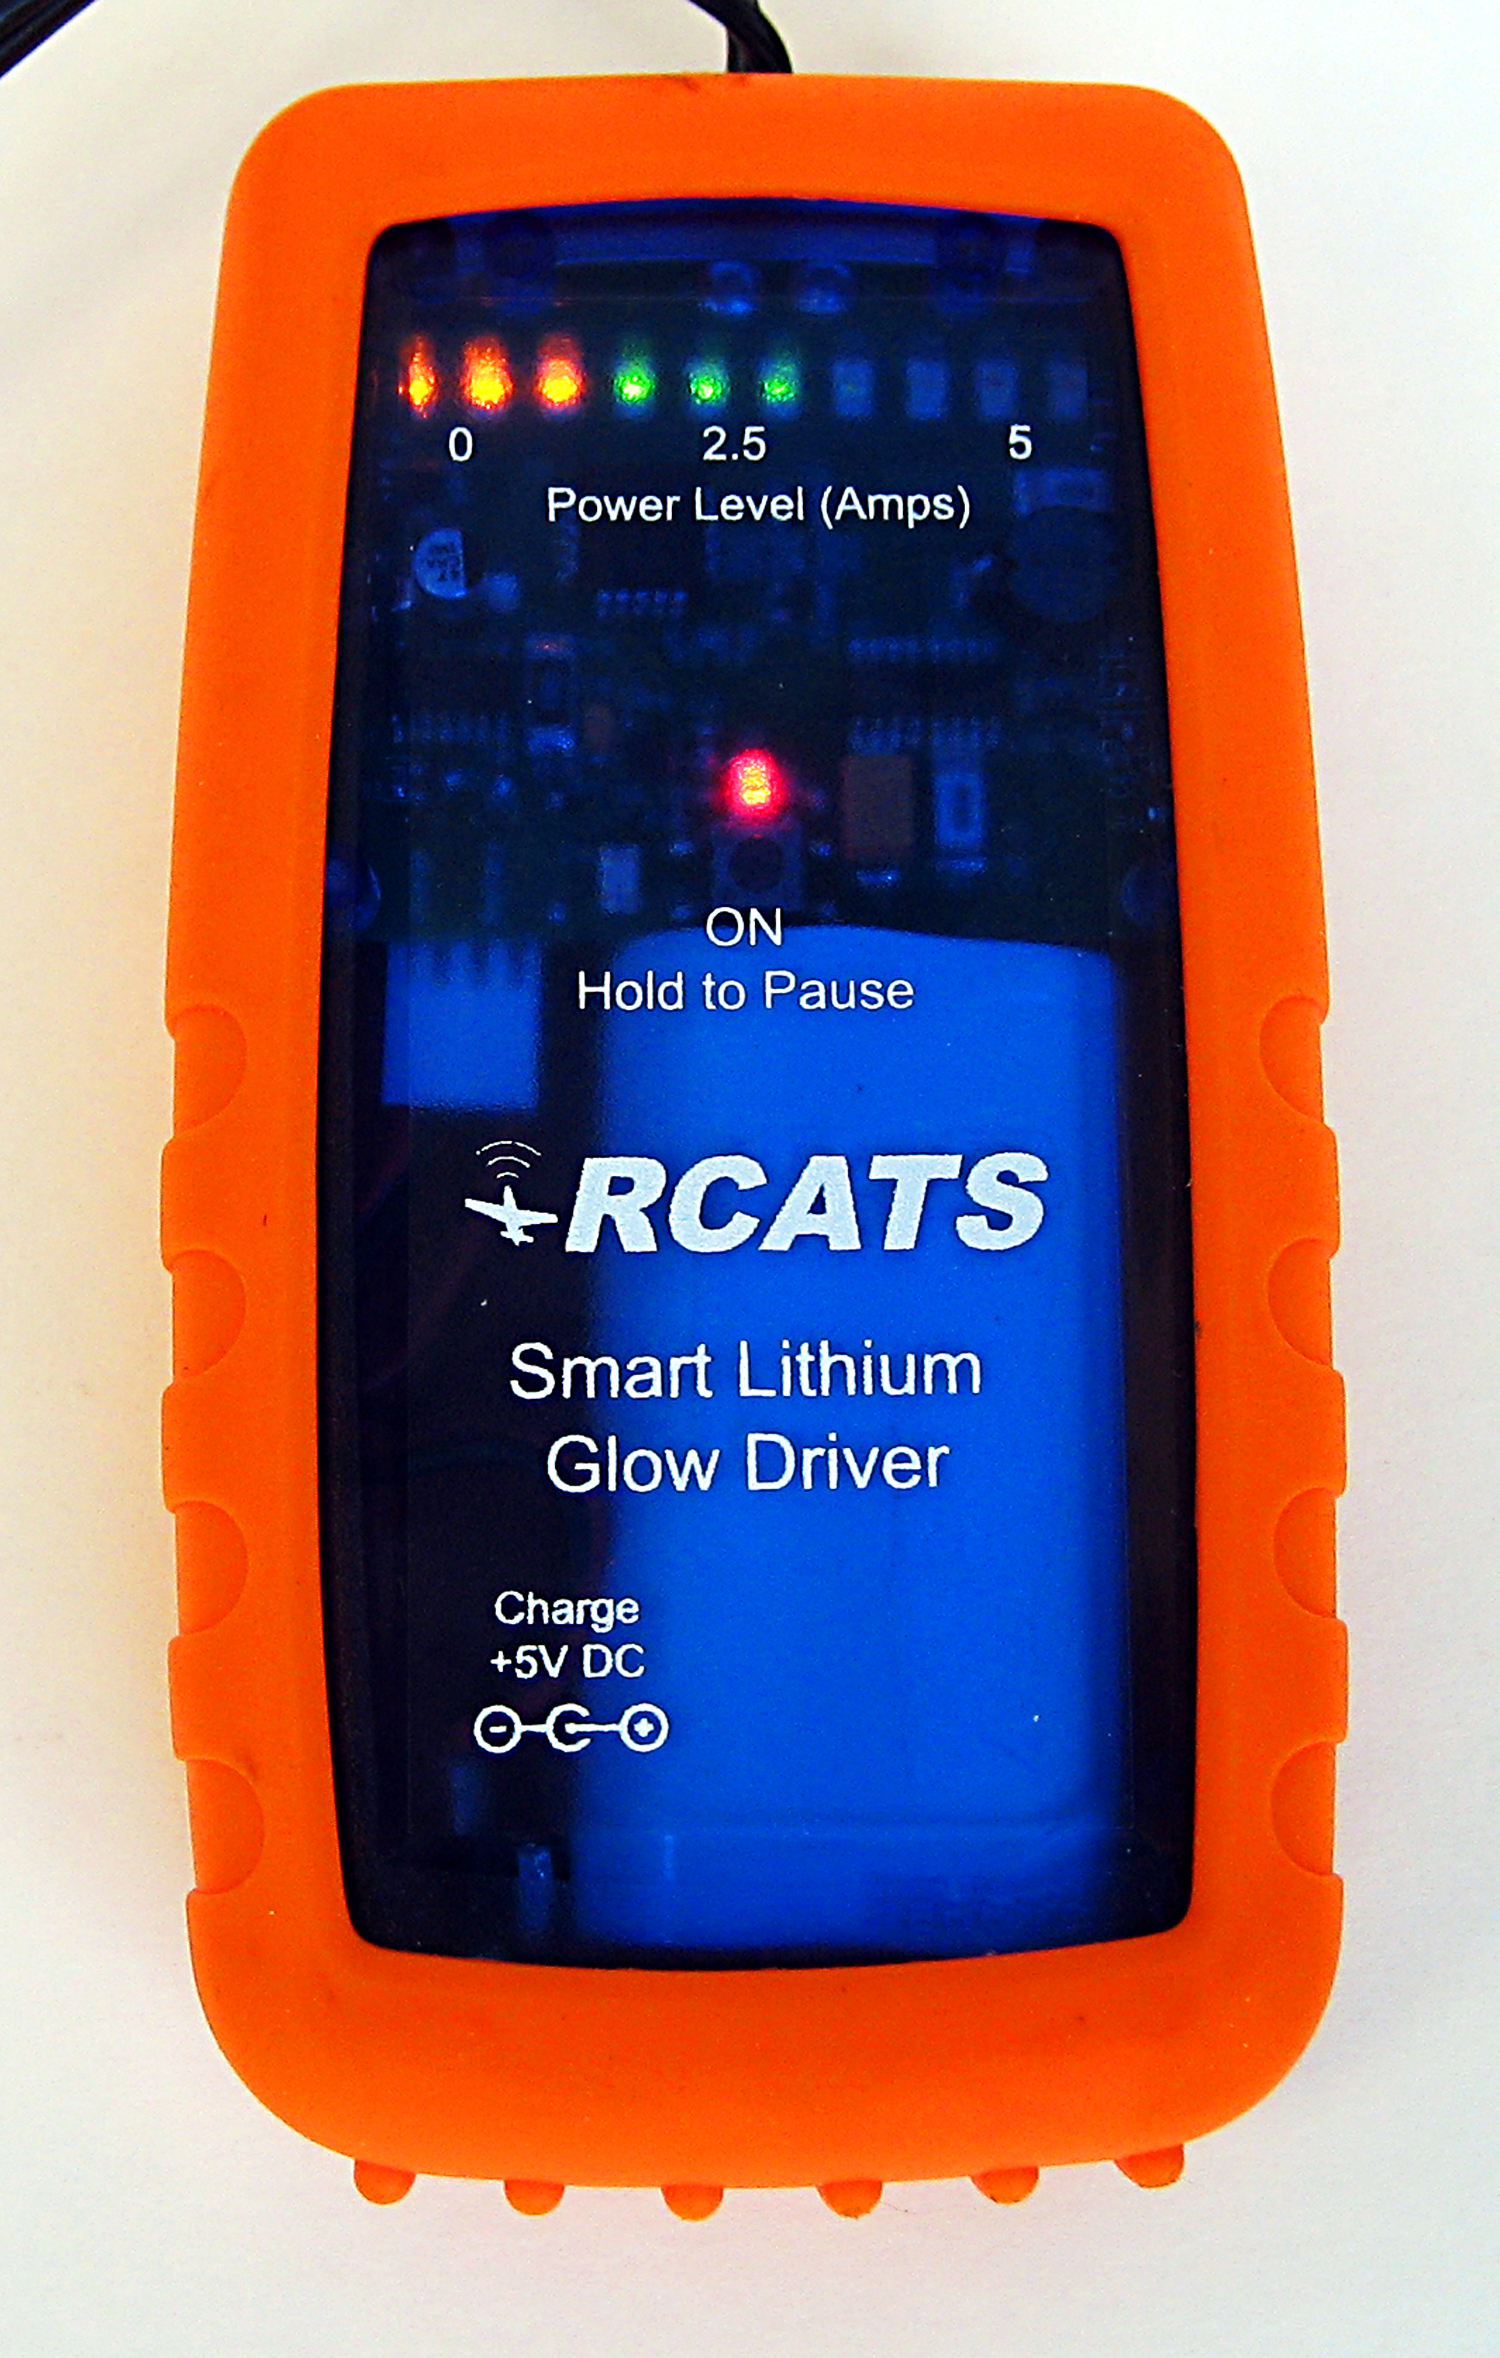 RCATS Smart Lithium Glow Driver